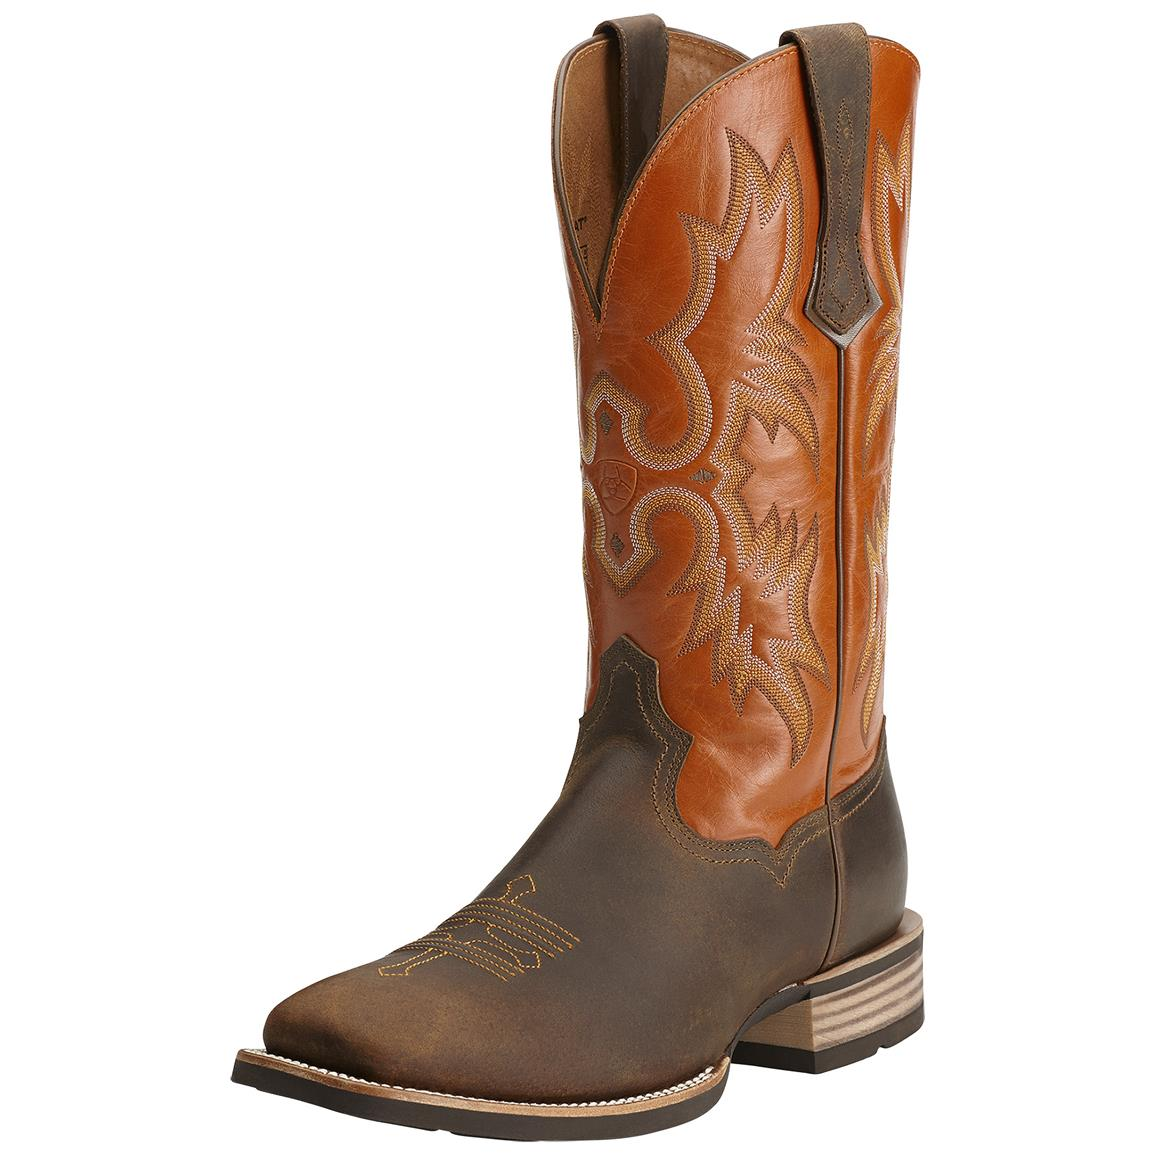 Ariat Tombstone Western Boots, Distressed Brown